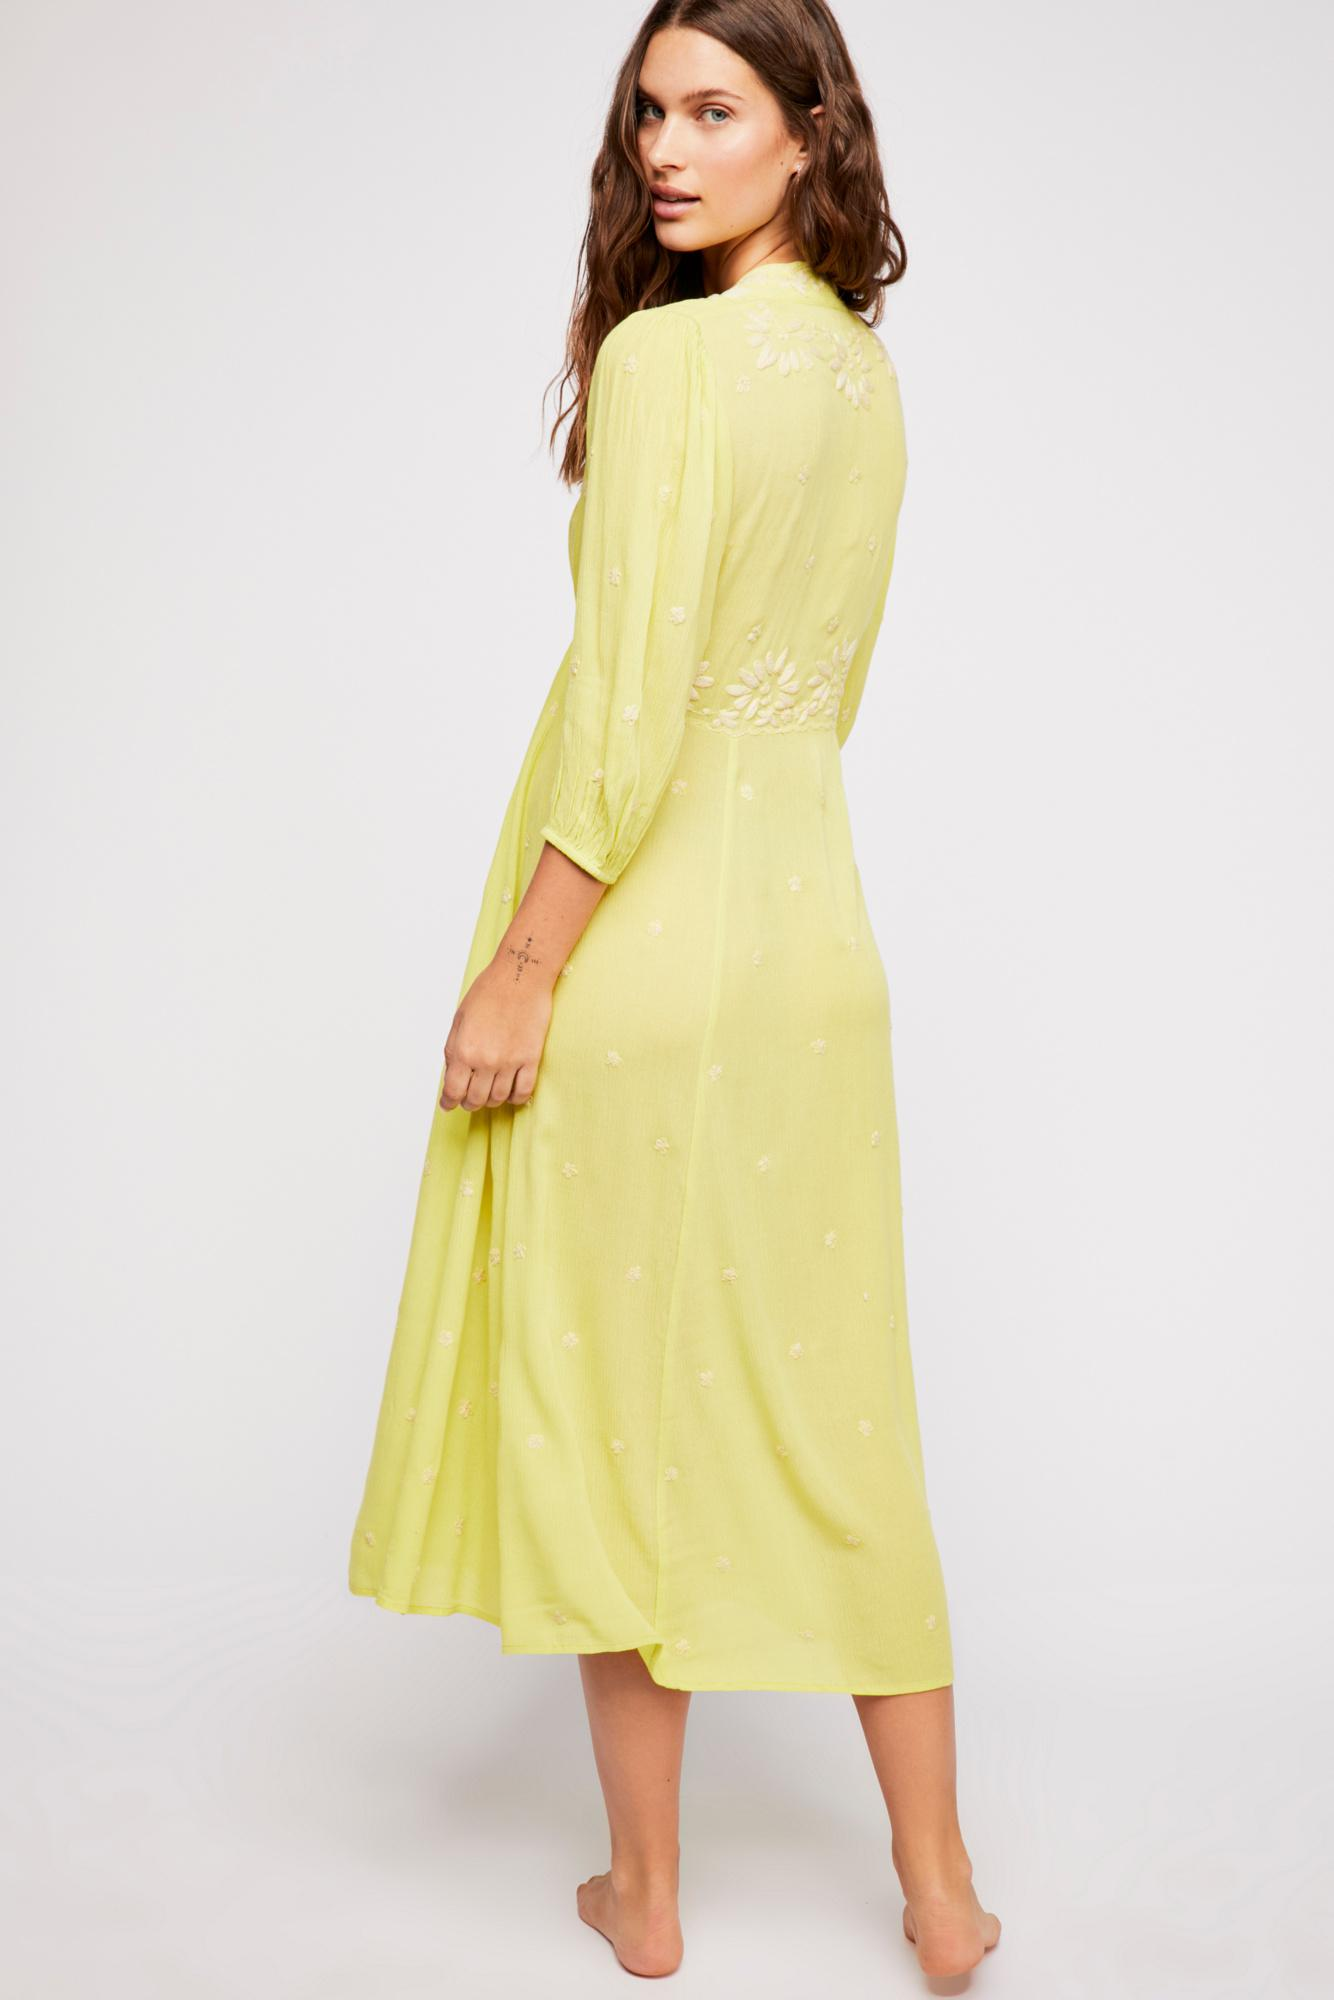 d89a17e71a799 Free People Embroidered Fable Midi Dress in Yellow - Save 6% - Lyst